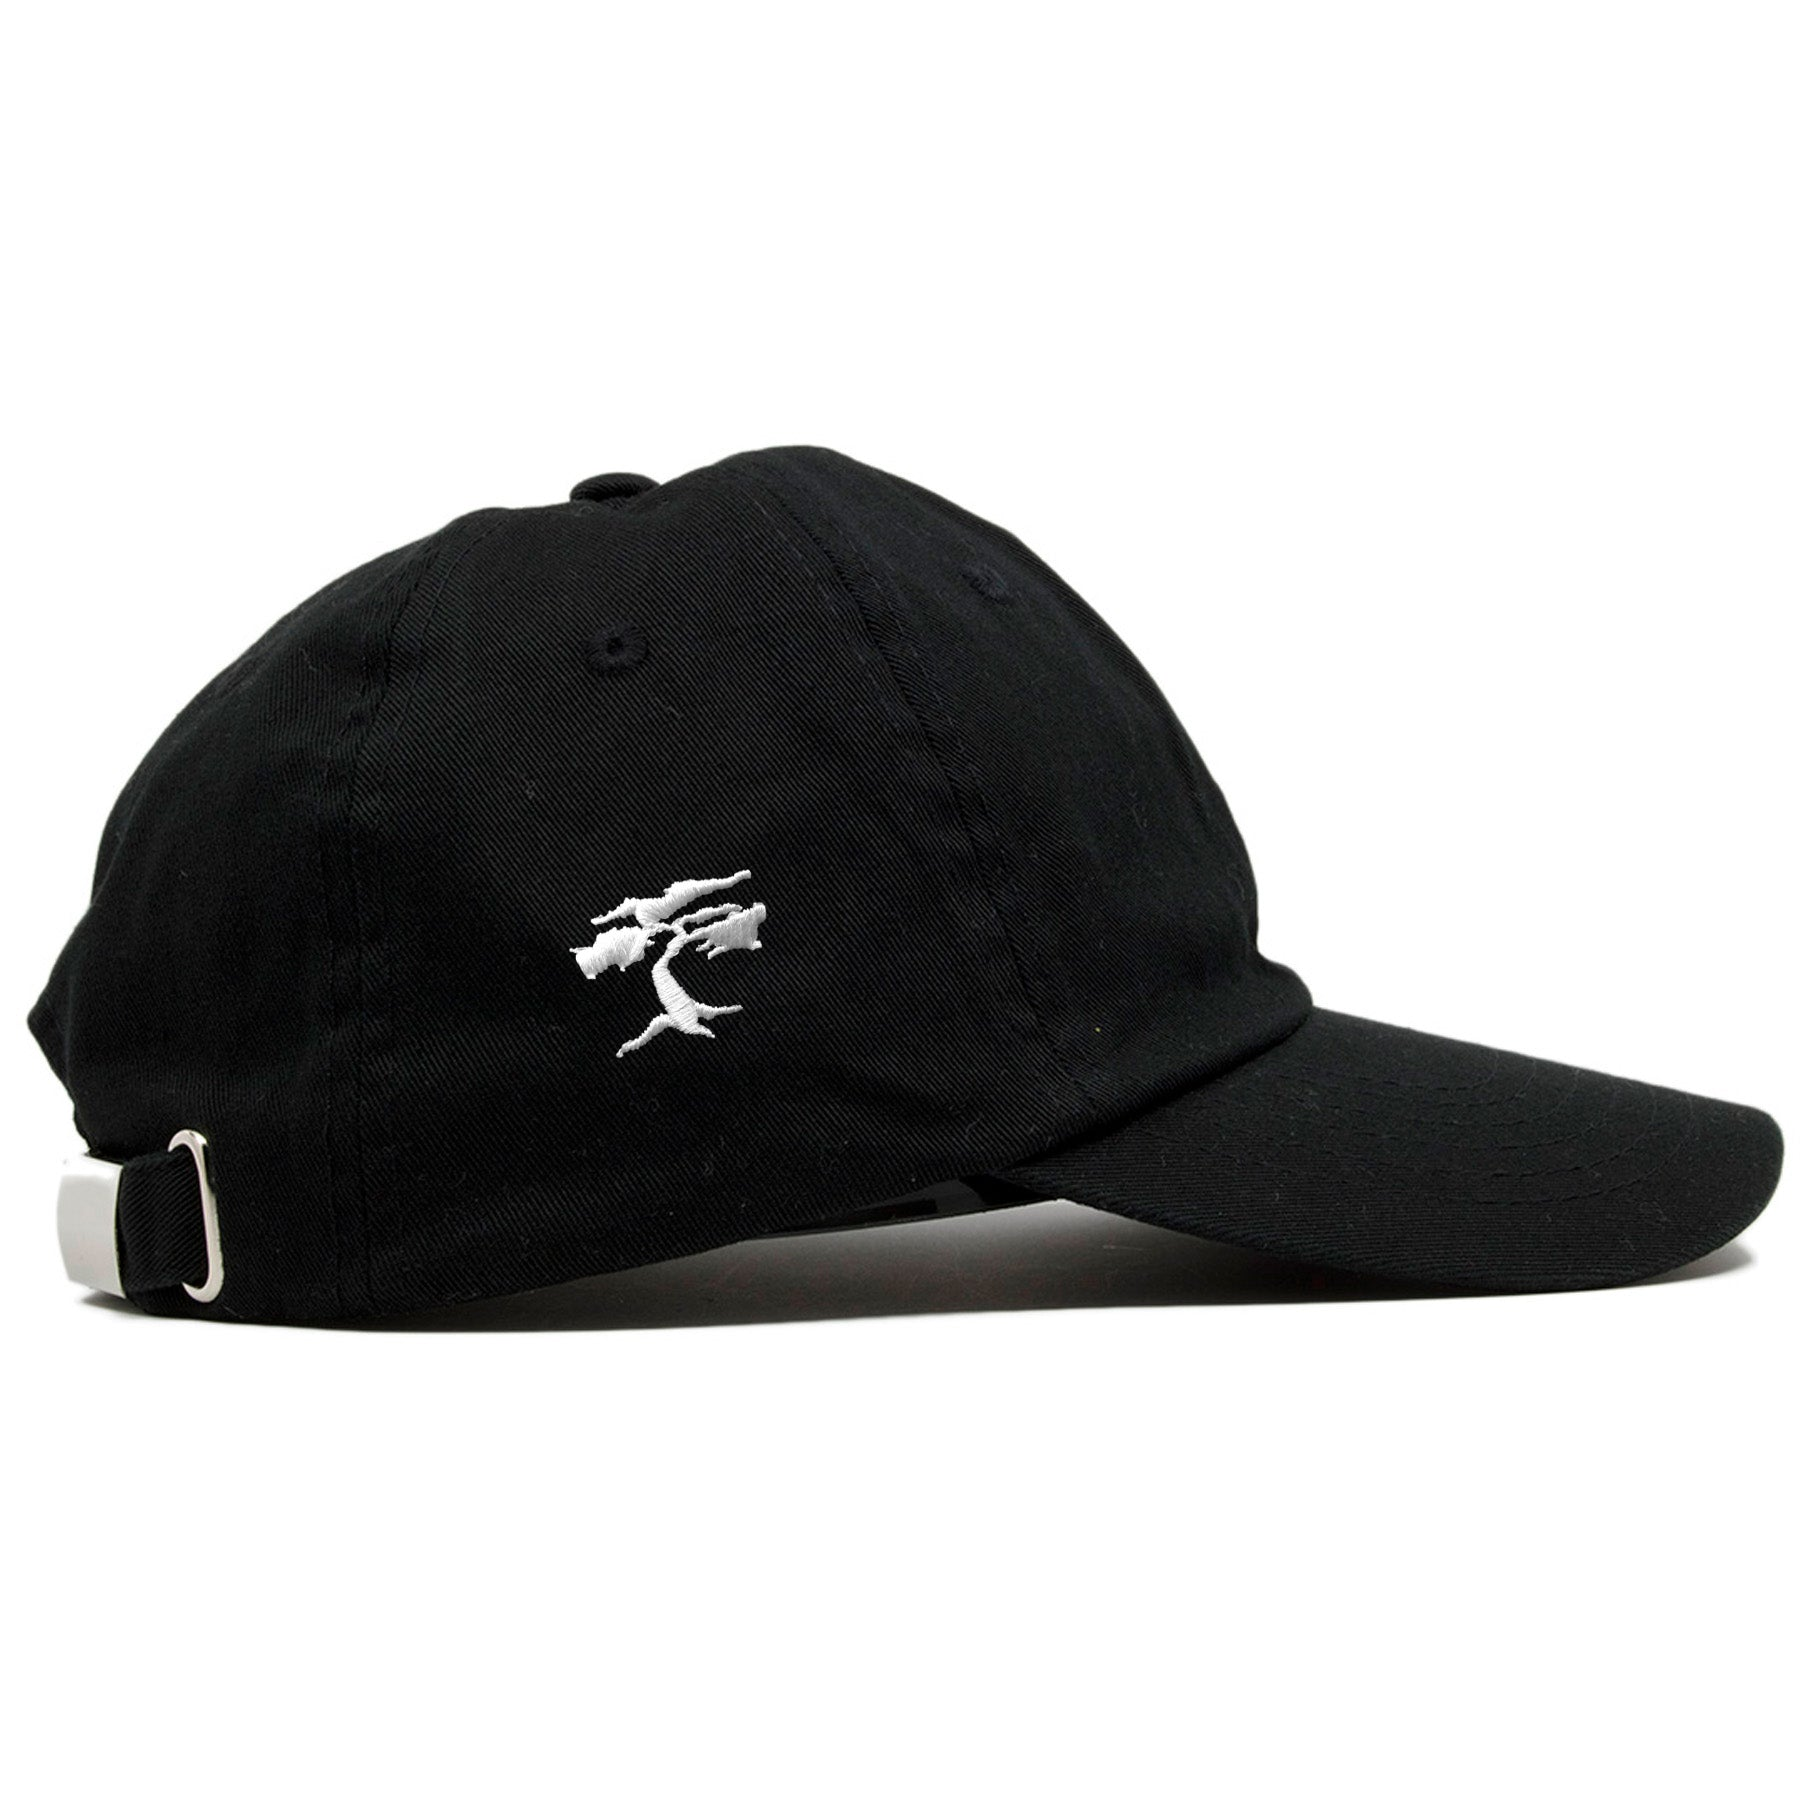 ... on the right side of the hello my name is kids sized papi black dad hat 5fb553d841d1